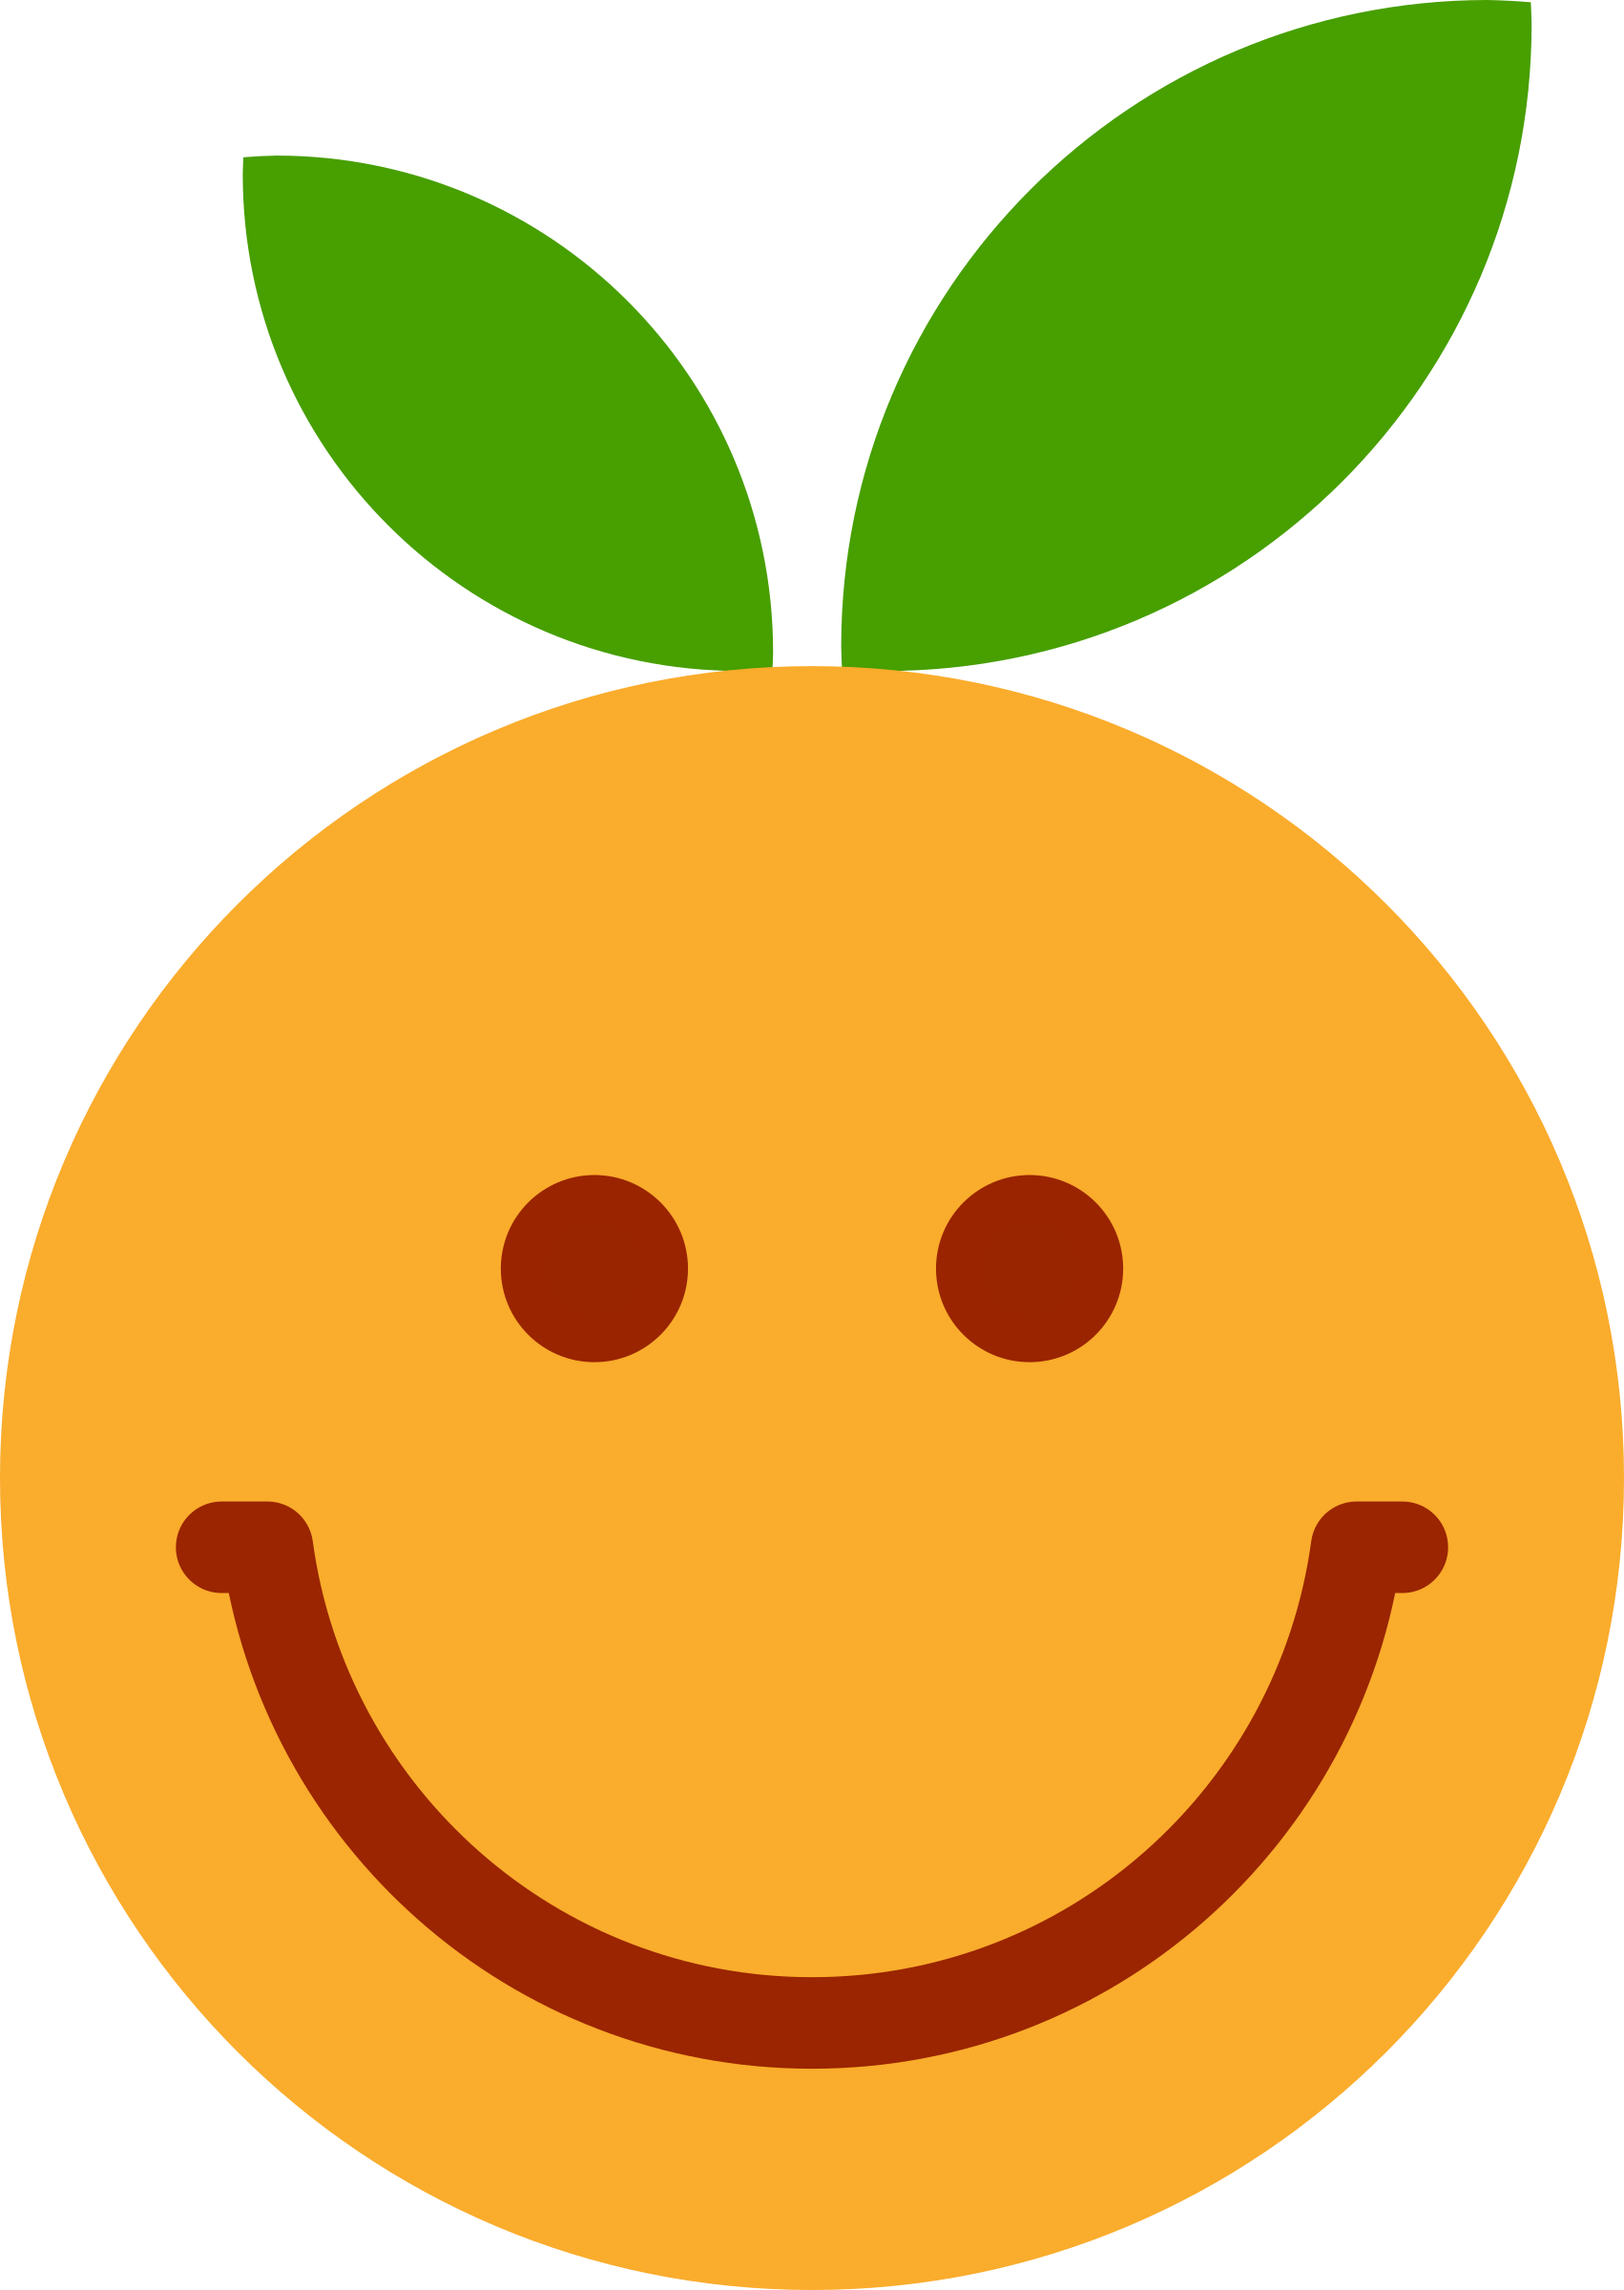 Smiley clem sourire big. Leaf clipart face